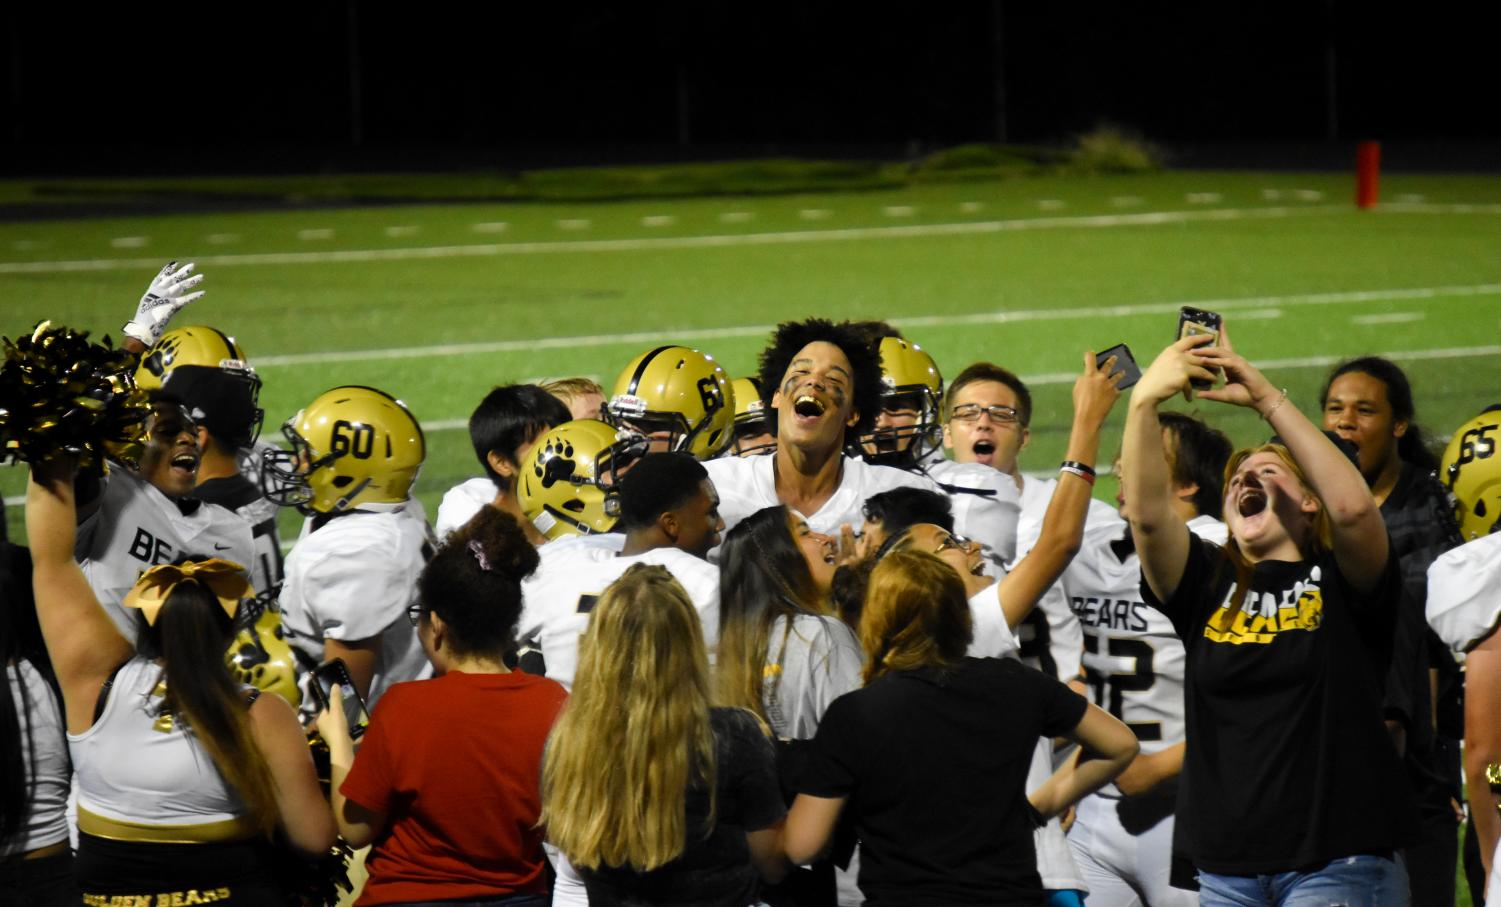 Turner students gather to celebrate the 52-0 win against JC Harmon on September 17.